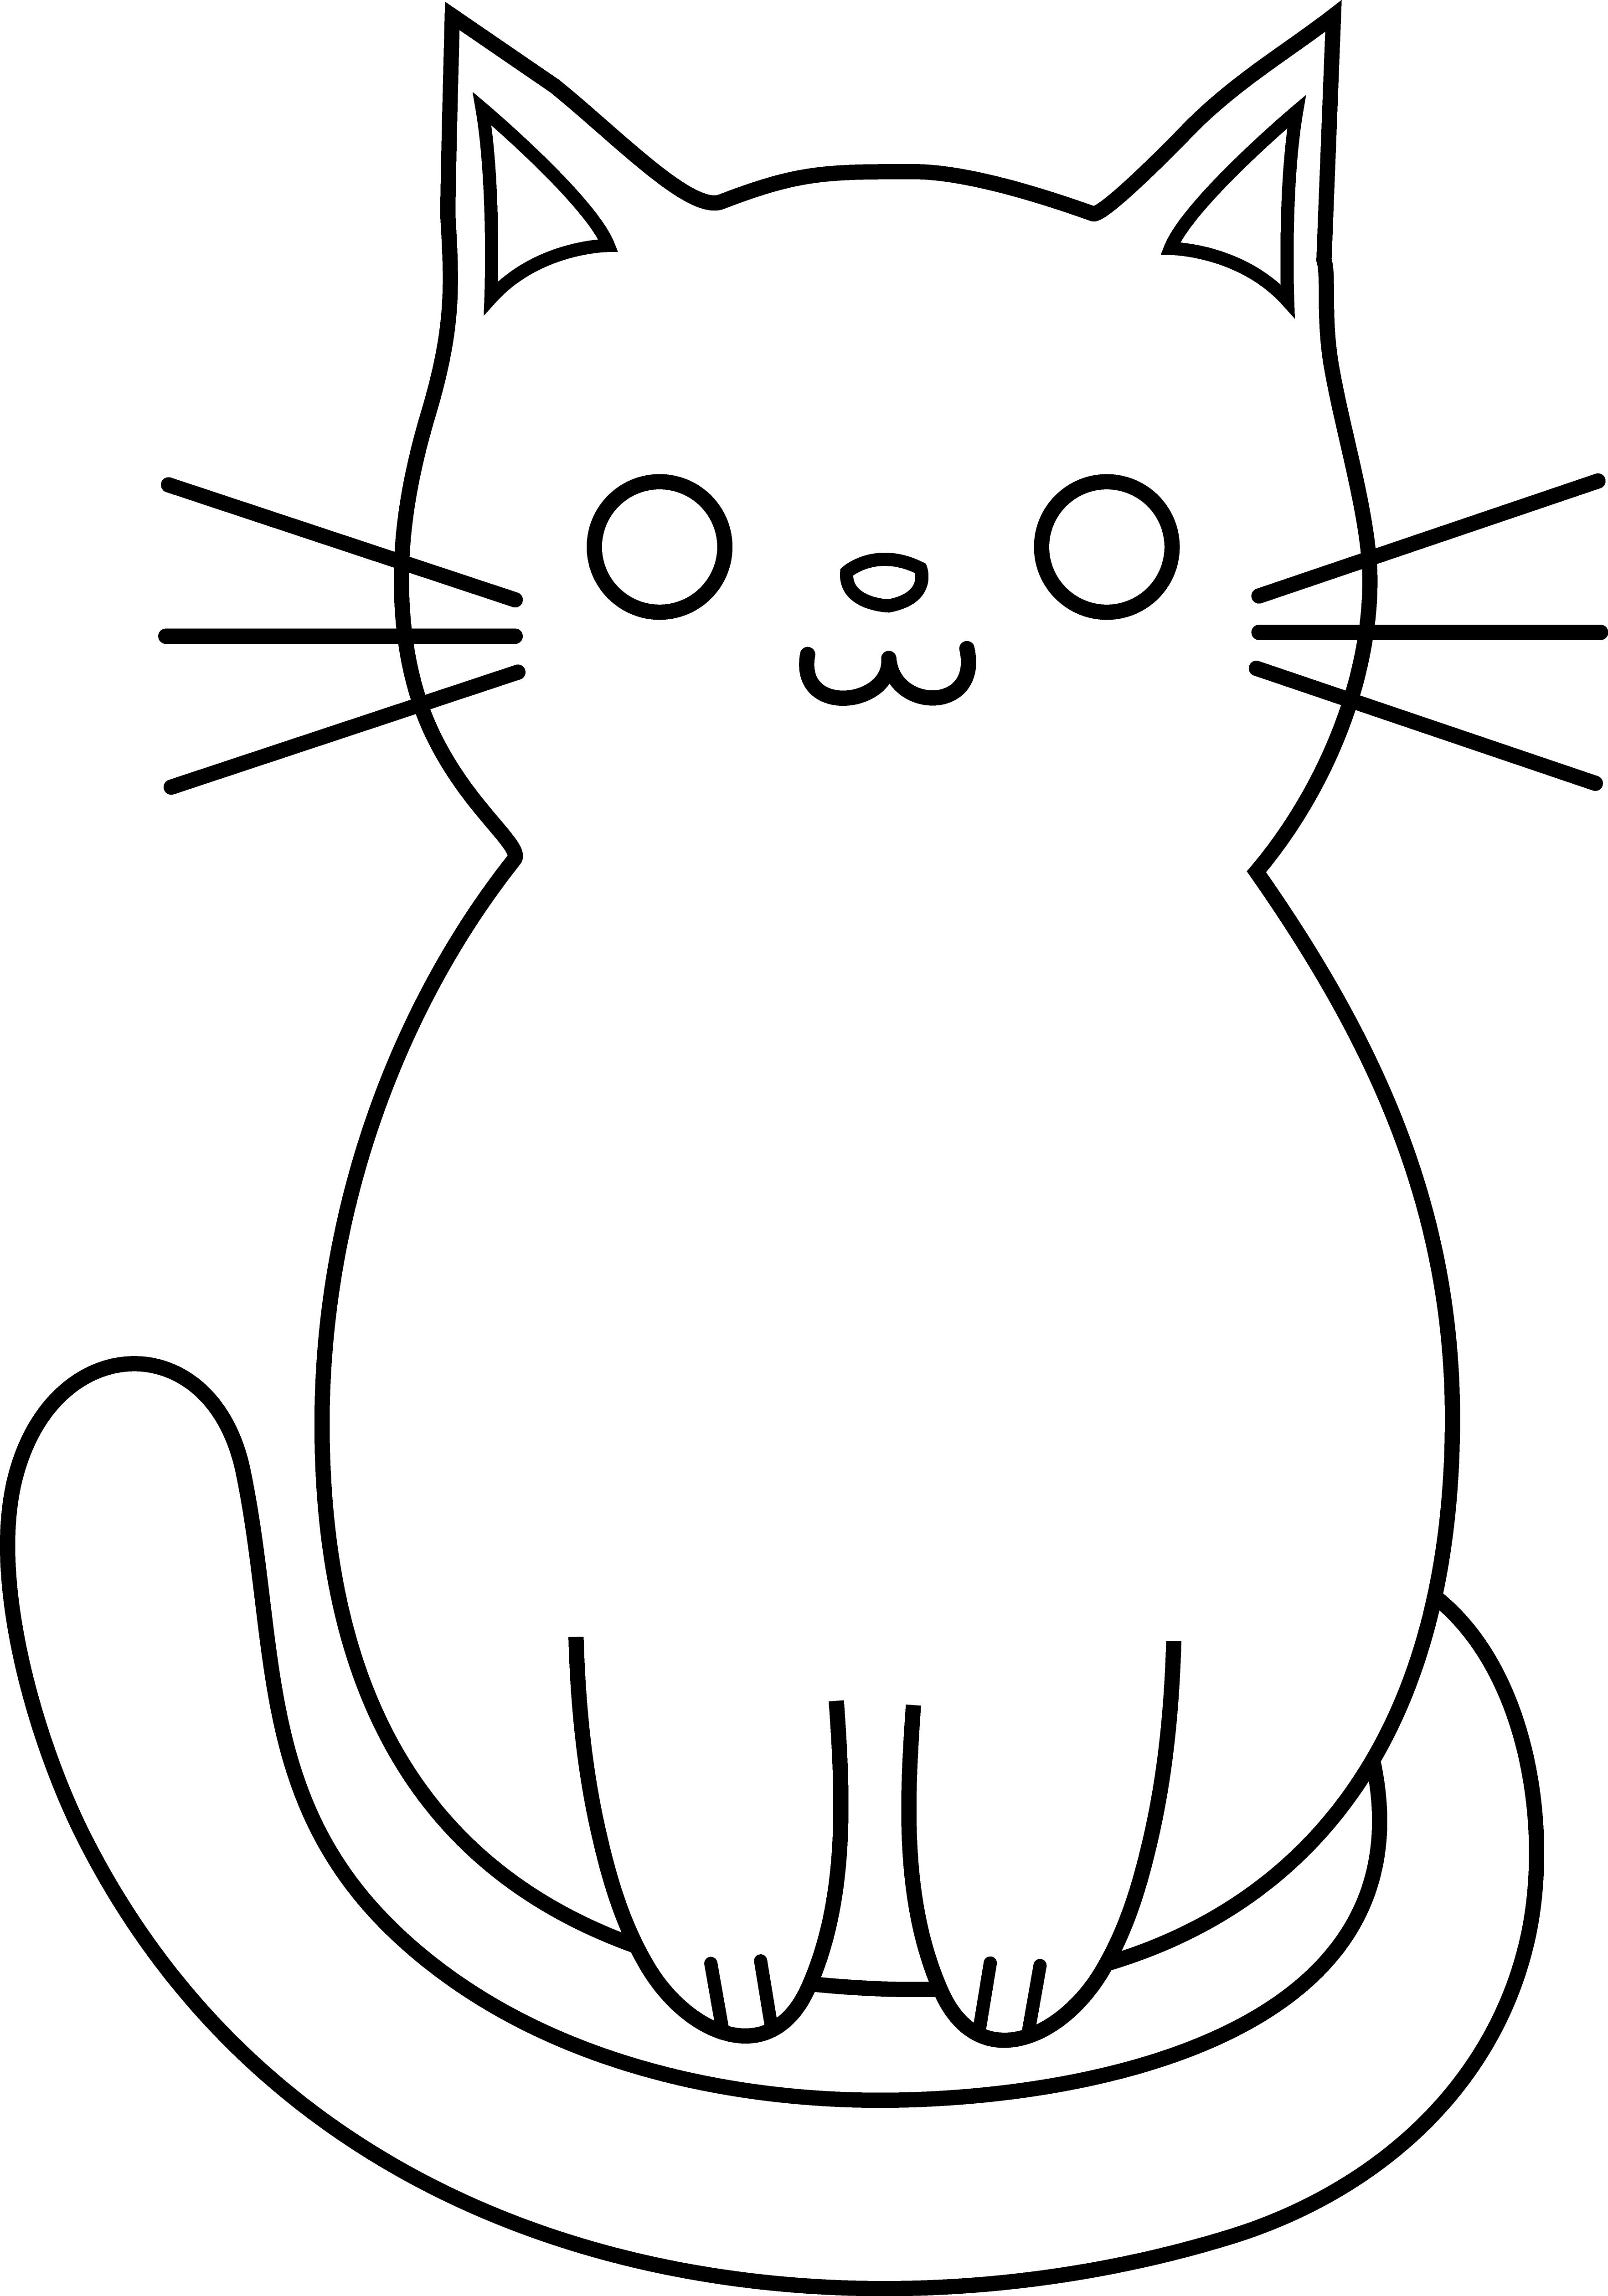 Easy cat drawing.